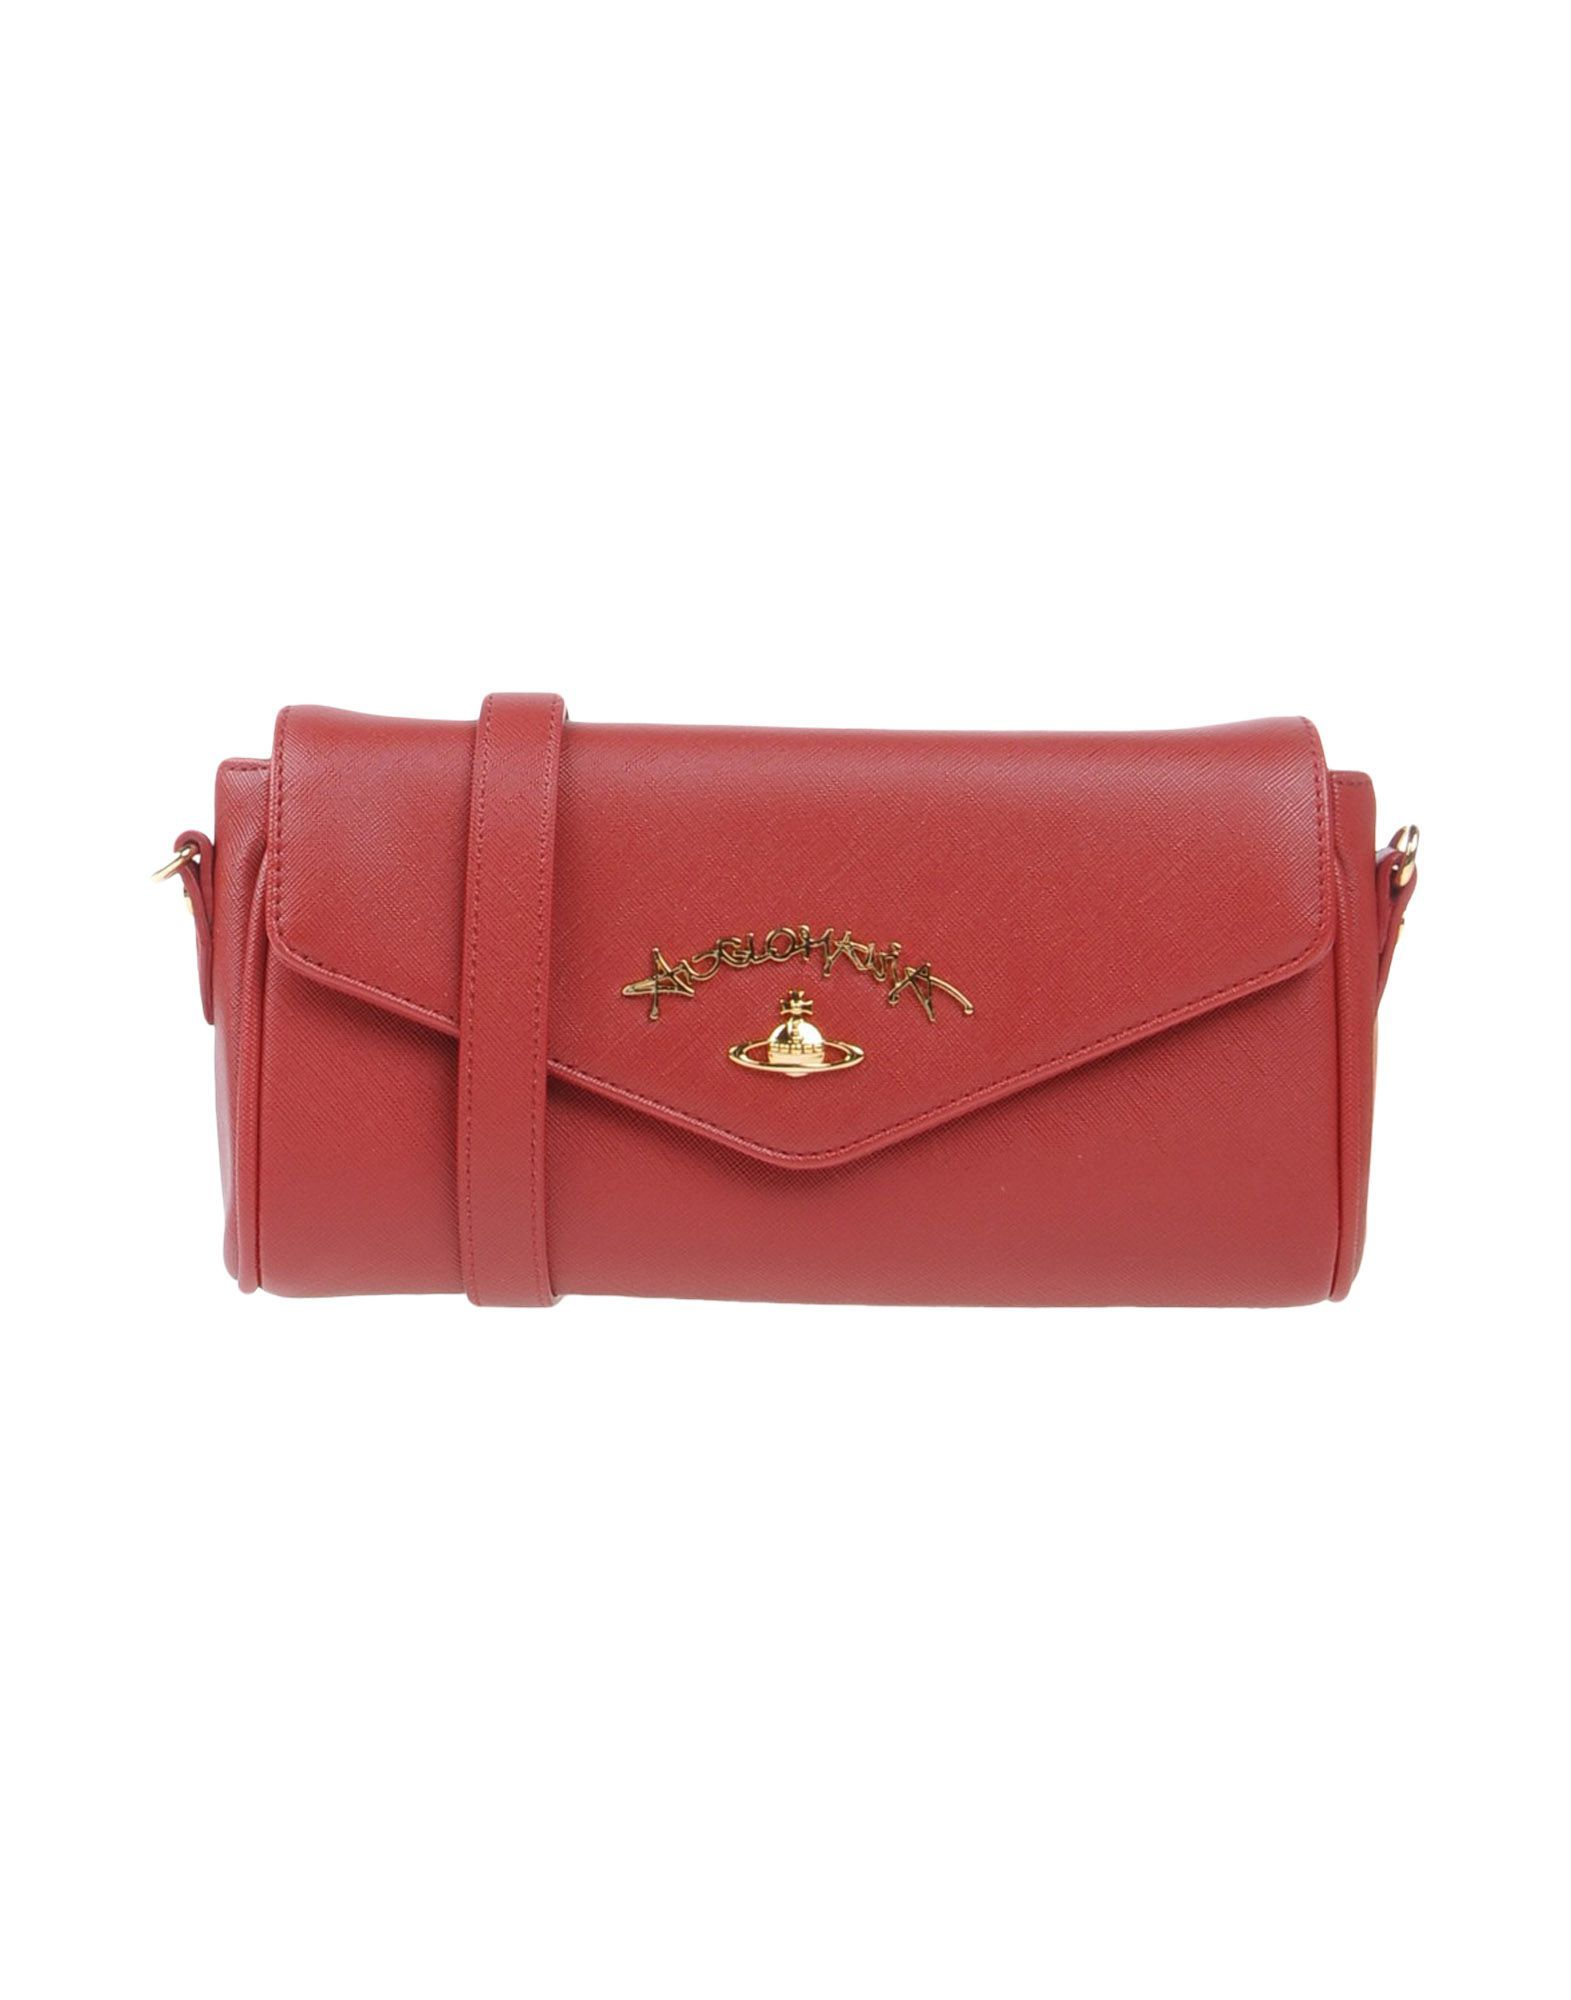 Pochette, Anglomanie, Rouge, Cuir, 2017, Une Taille Vivienne Westwood